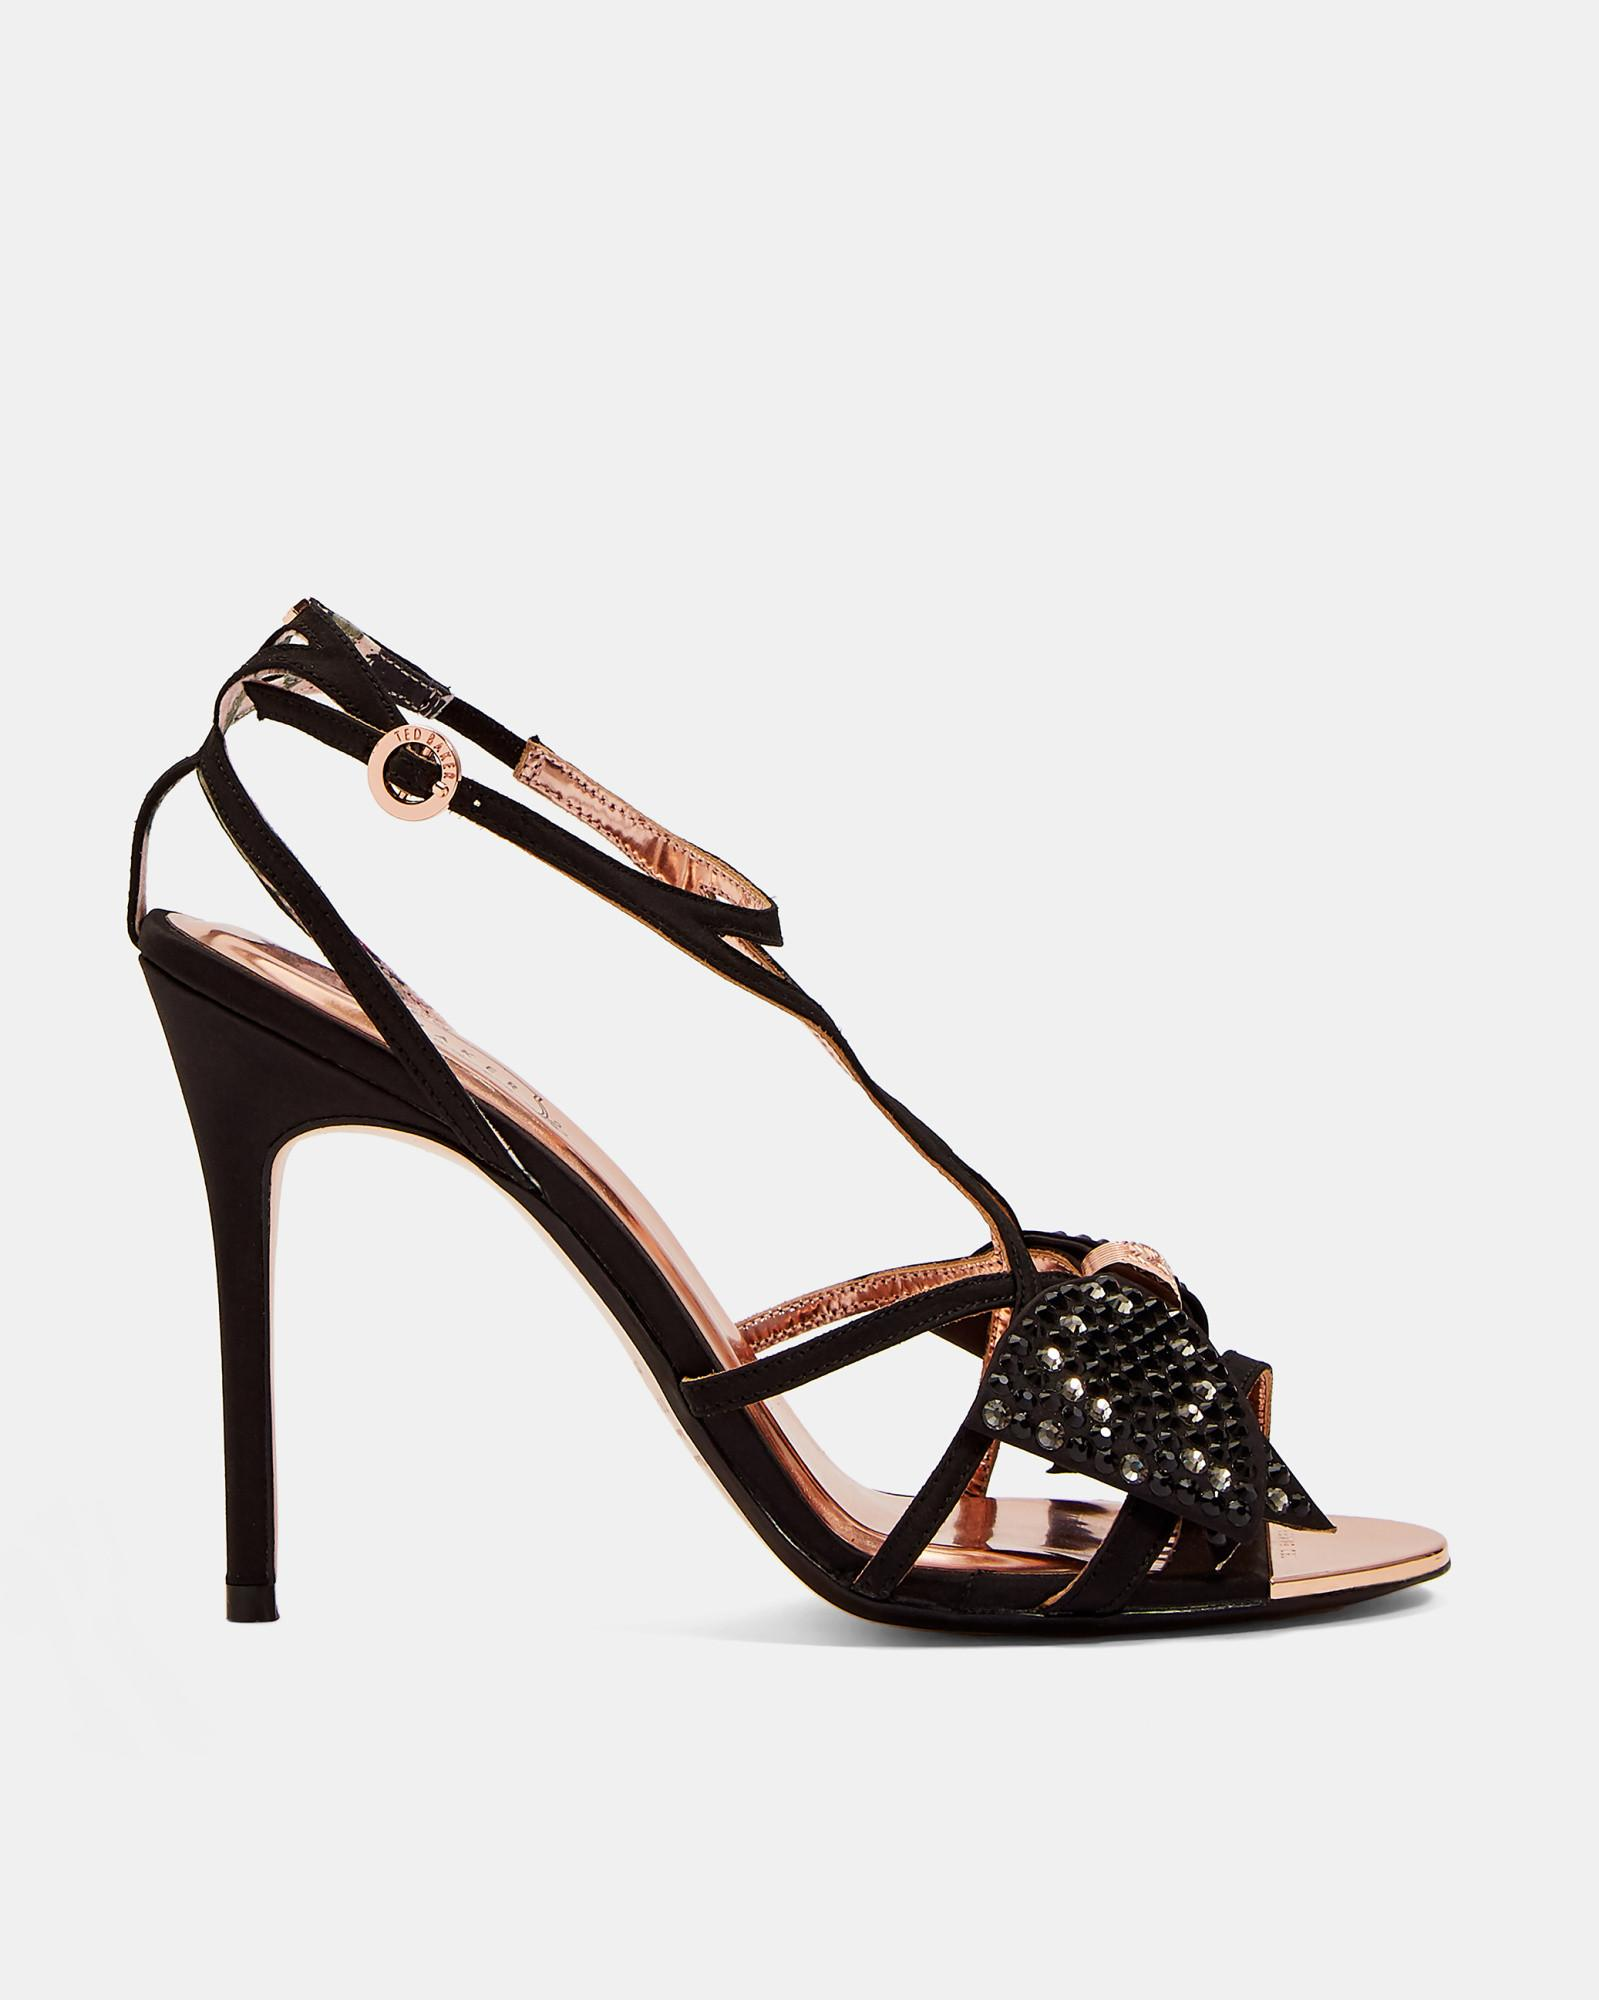 8c35187d7 Ted Baker Crystal Bow Strap Sandals in Black - Lyst